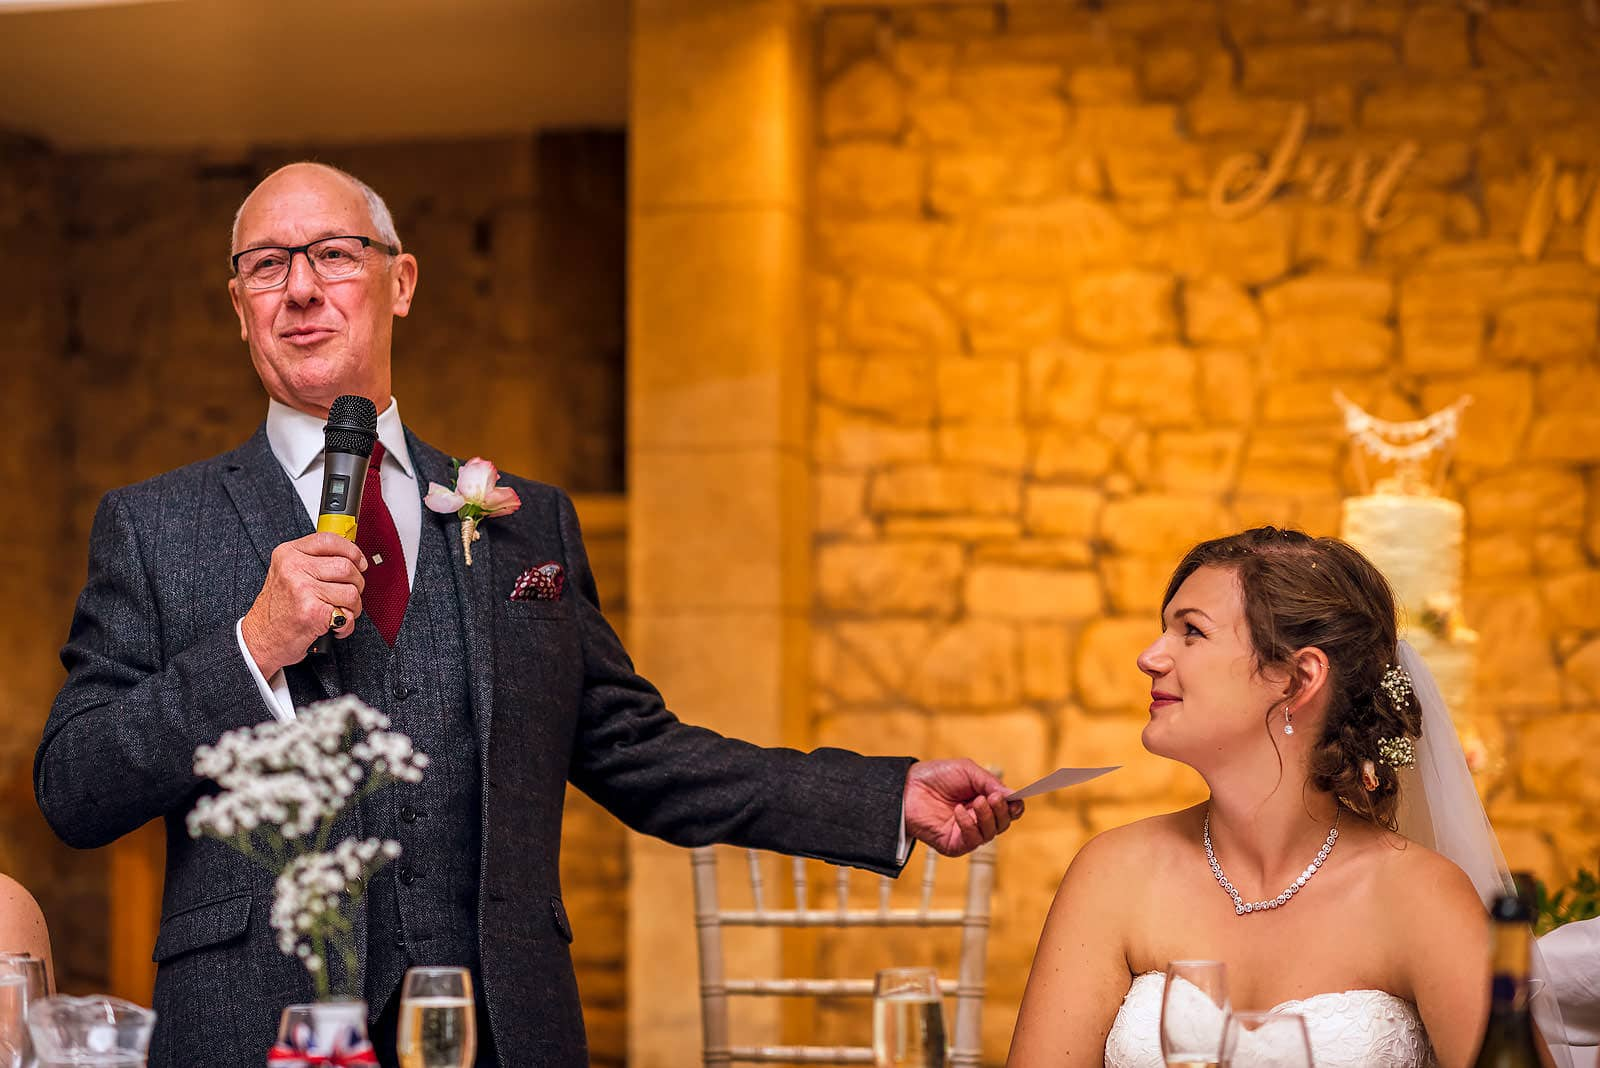 A very proud father of the bride giving his speech